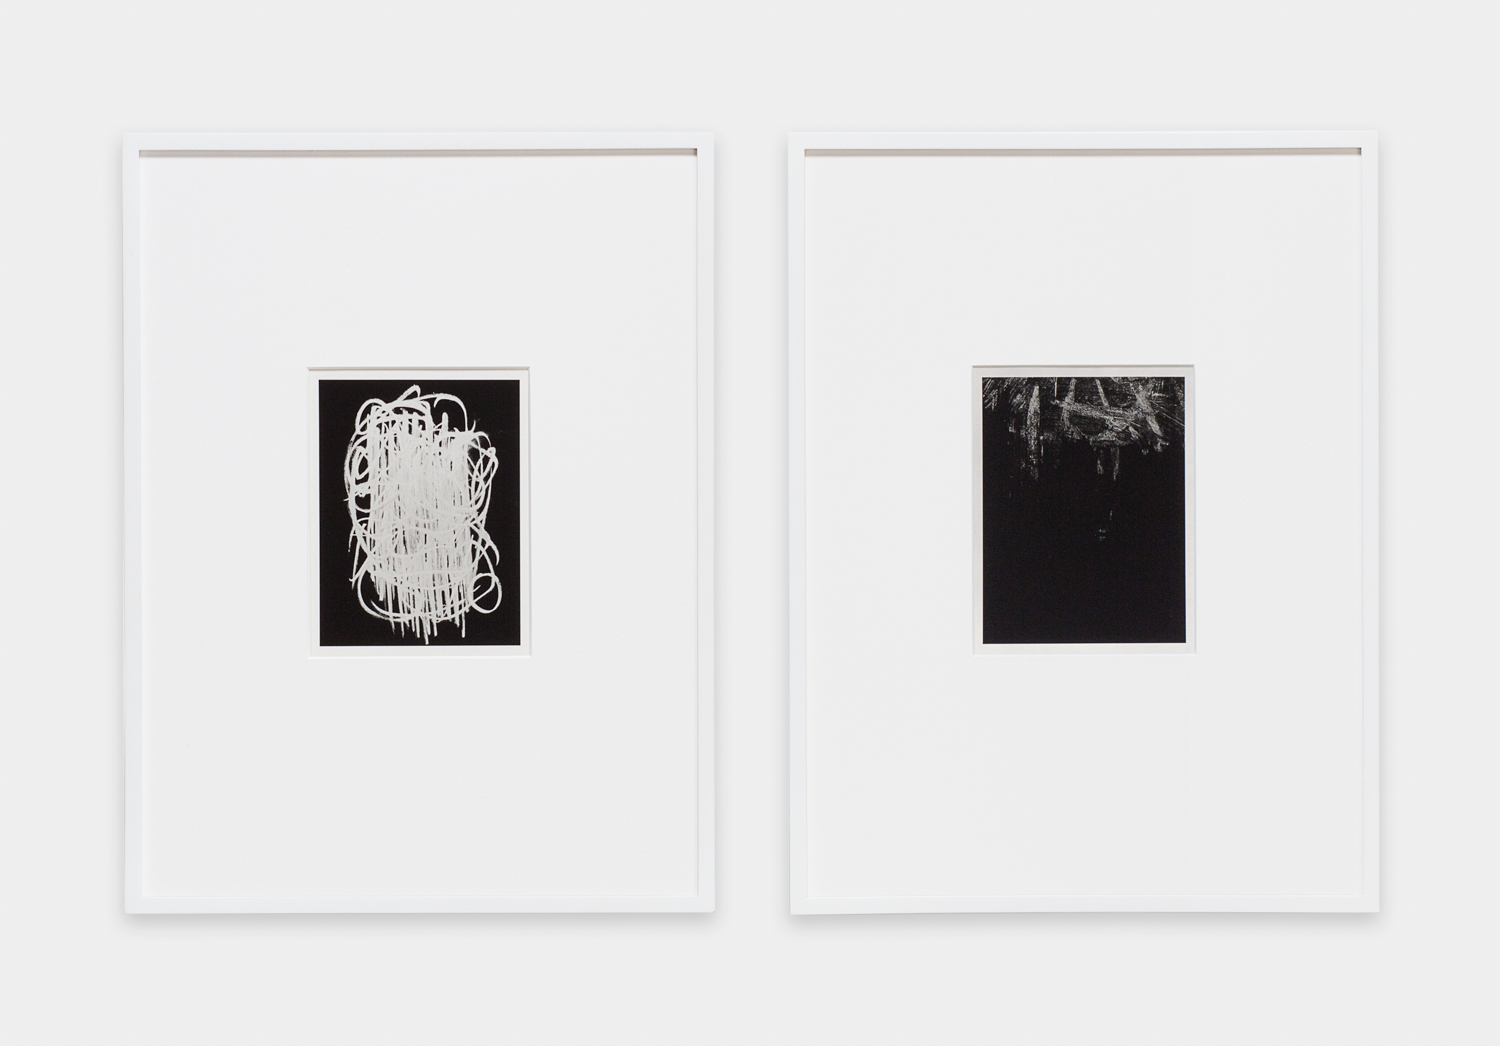 Anthony Pearson  Untitled (Solarization Diptych)  2011 Solarized silver gelatin photographs in artist's frames 17 ½h x 28w in AP272